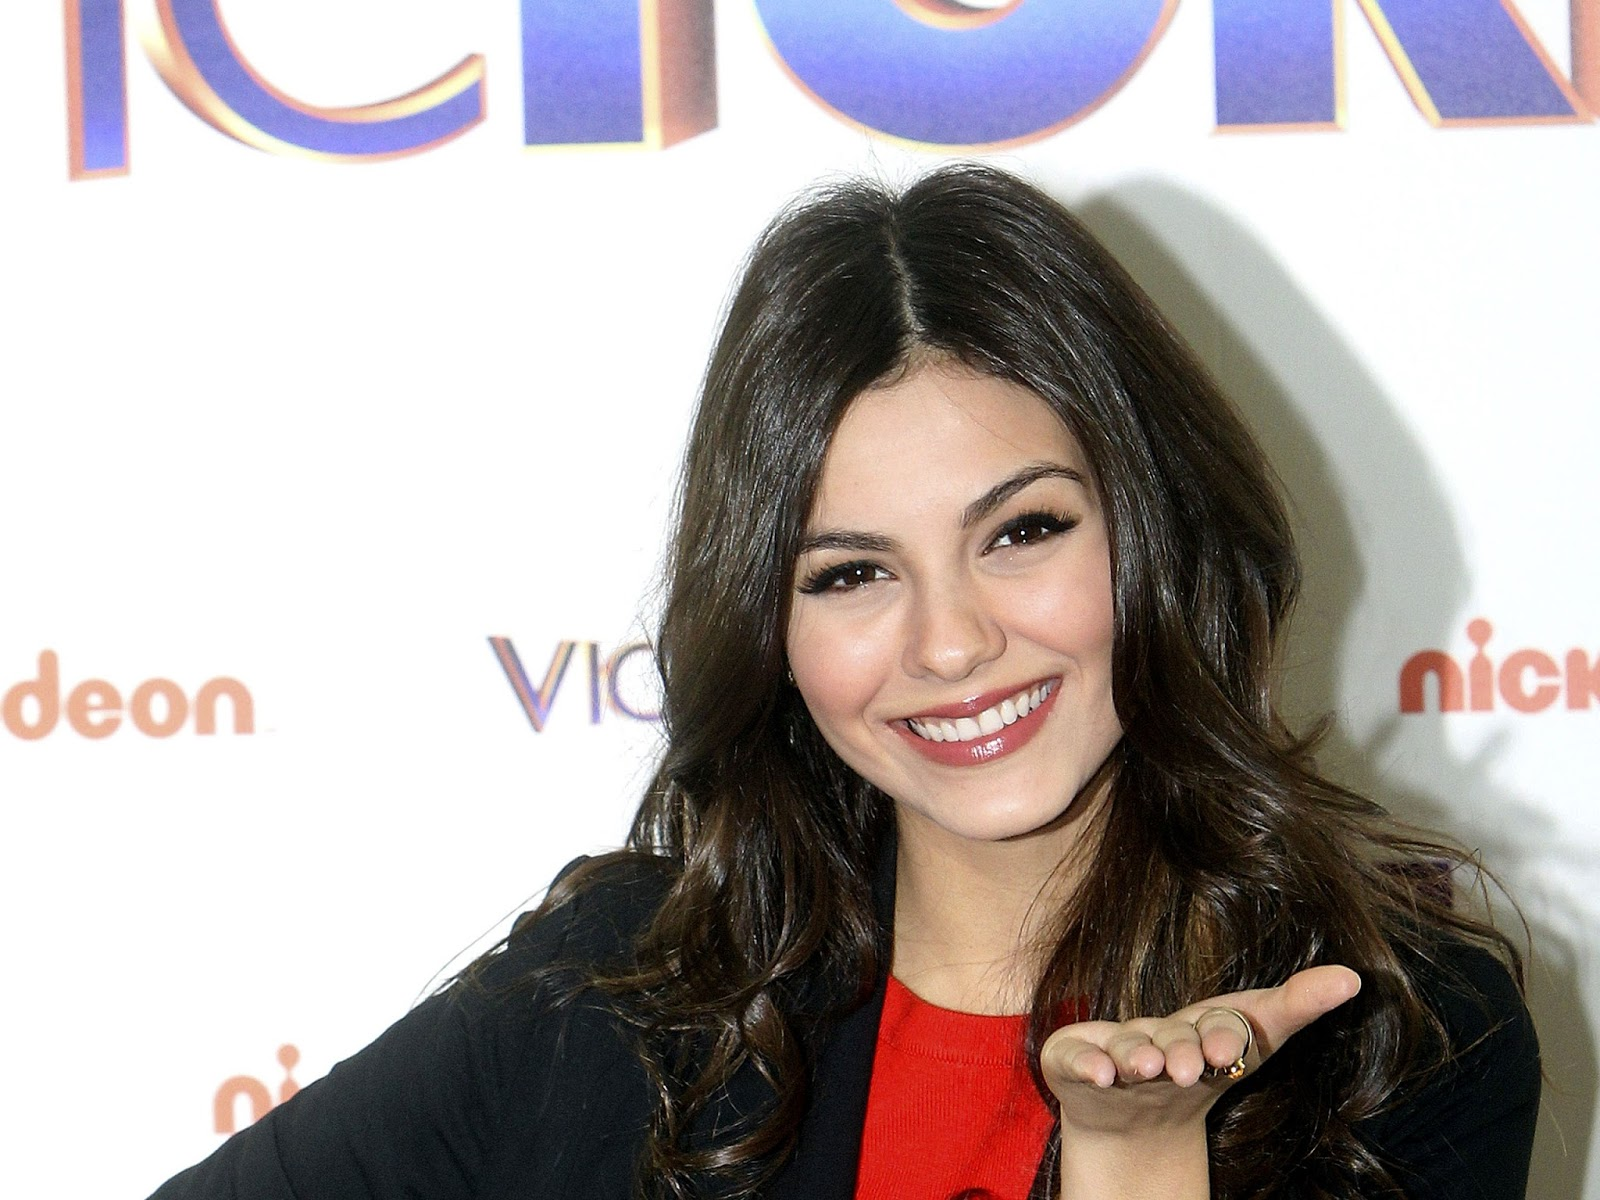 Victoria Justice Hd Wallpapers HD Wallpapers 1600x1200